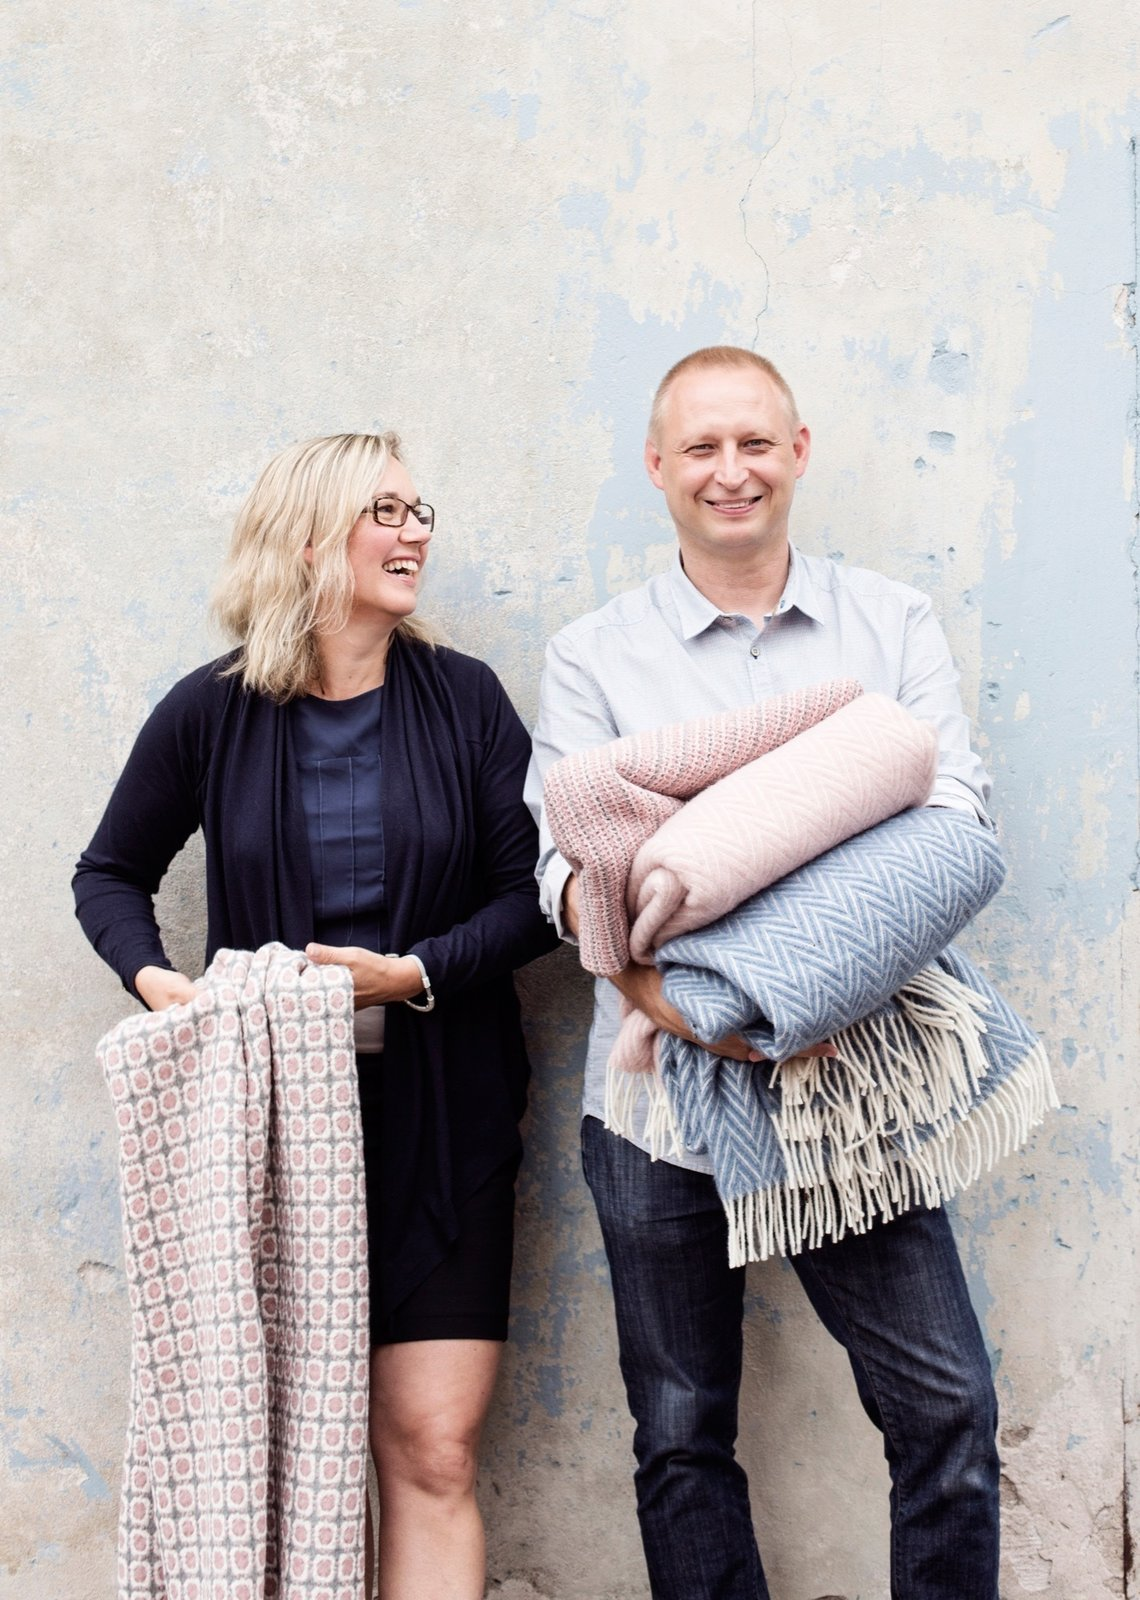 Jaana and Esko Hjelt, fourth generation weavers and owners of Lapuan Kankurit